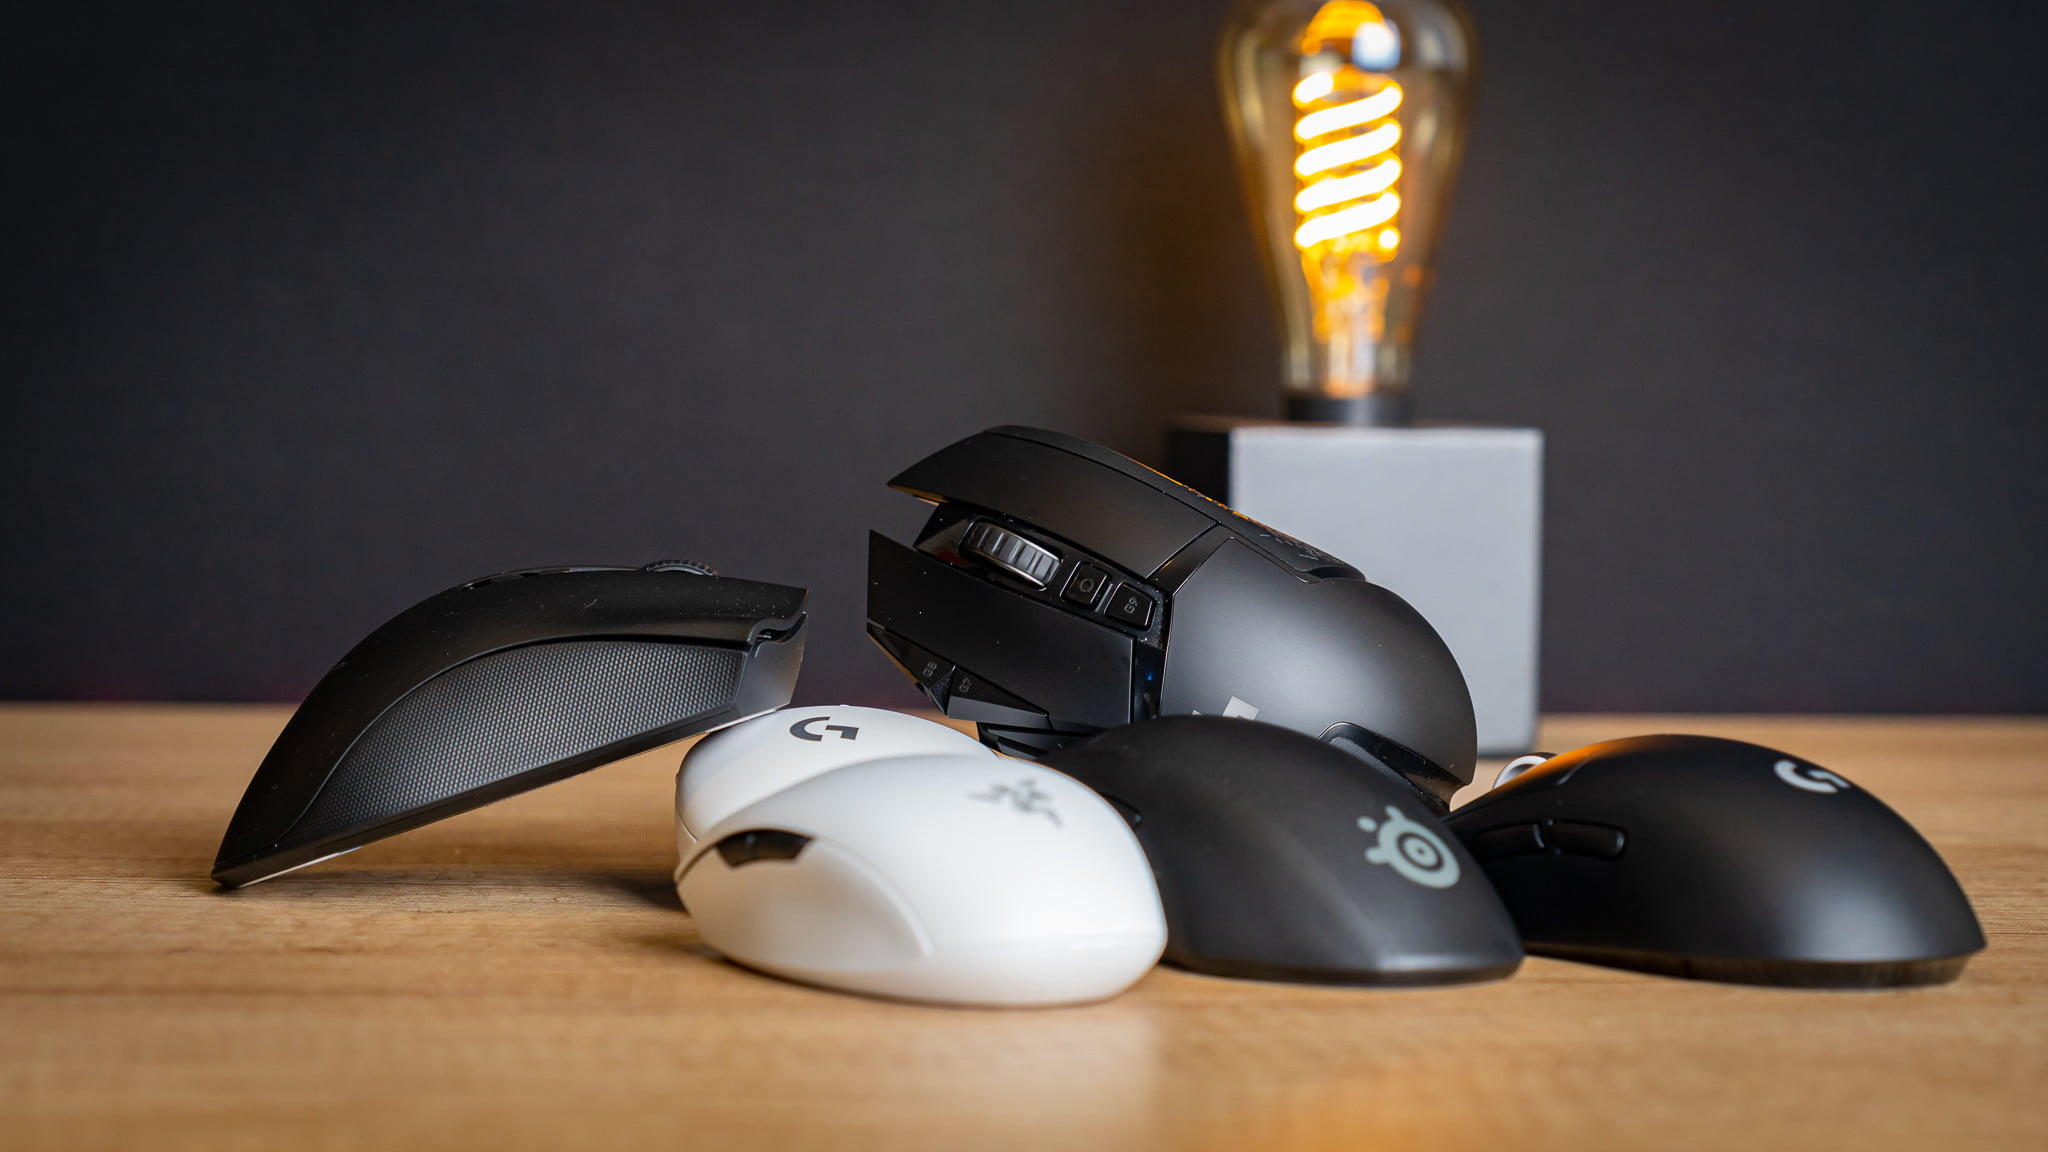 Making a Plea For a Proper, Ergonomic Gaming Mouse